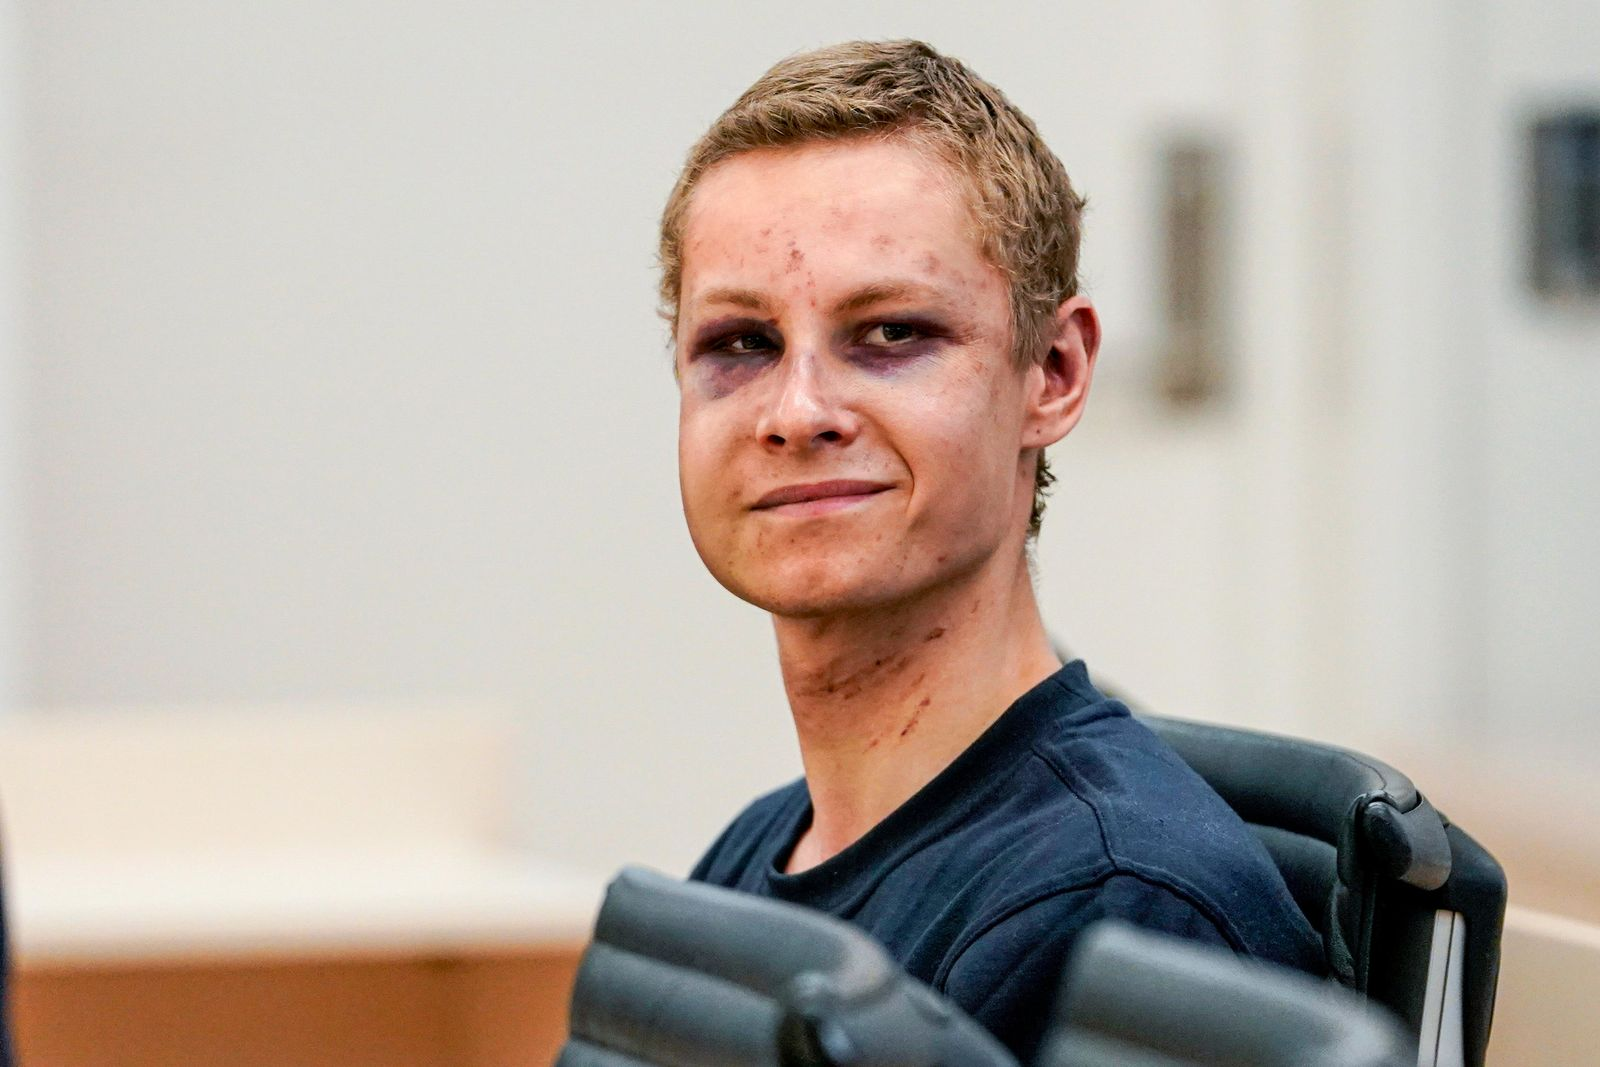 Suspected gunman Philip Manshaus appears in court, in Oslo, Norway, Monday, Aug. 12, 2019. (Cornelius Poppen, NTB scanpix via AP)